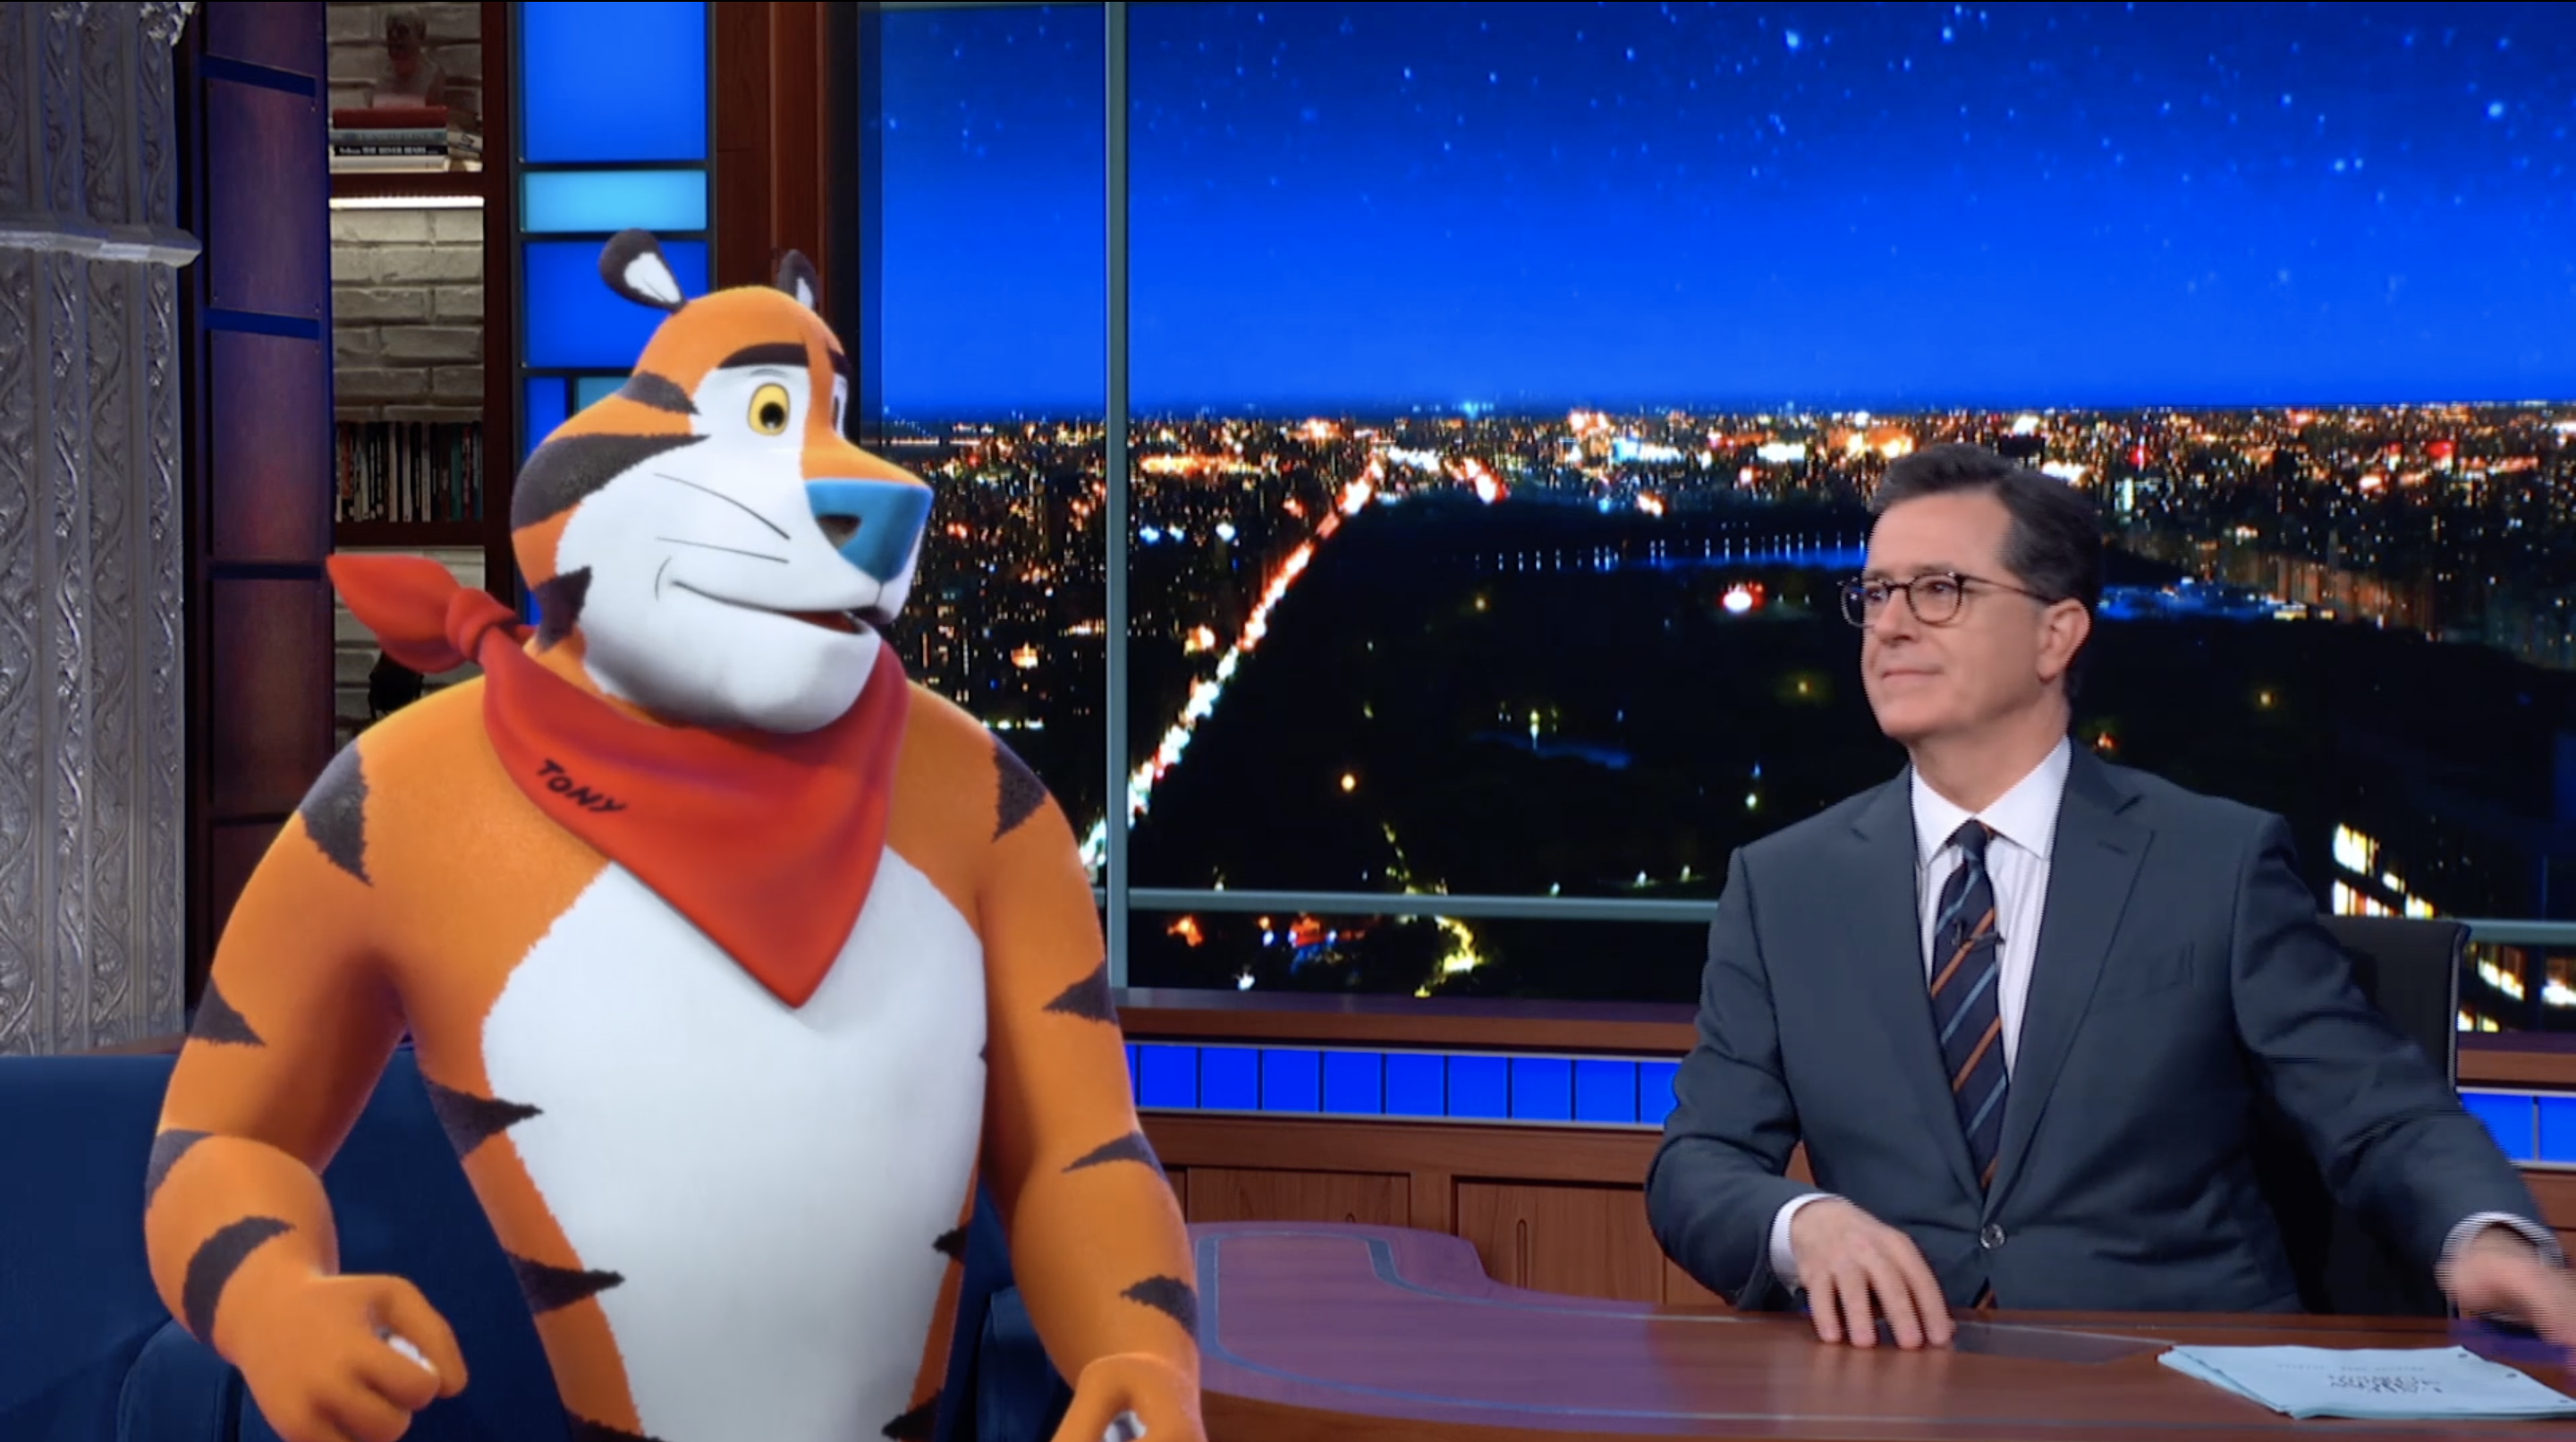 Real-time compositing with Tony the Tiger on The Late Show with Stephen Colbert #missiontiger